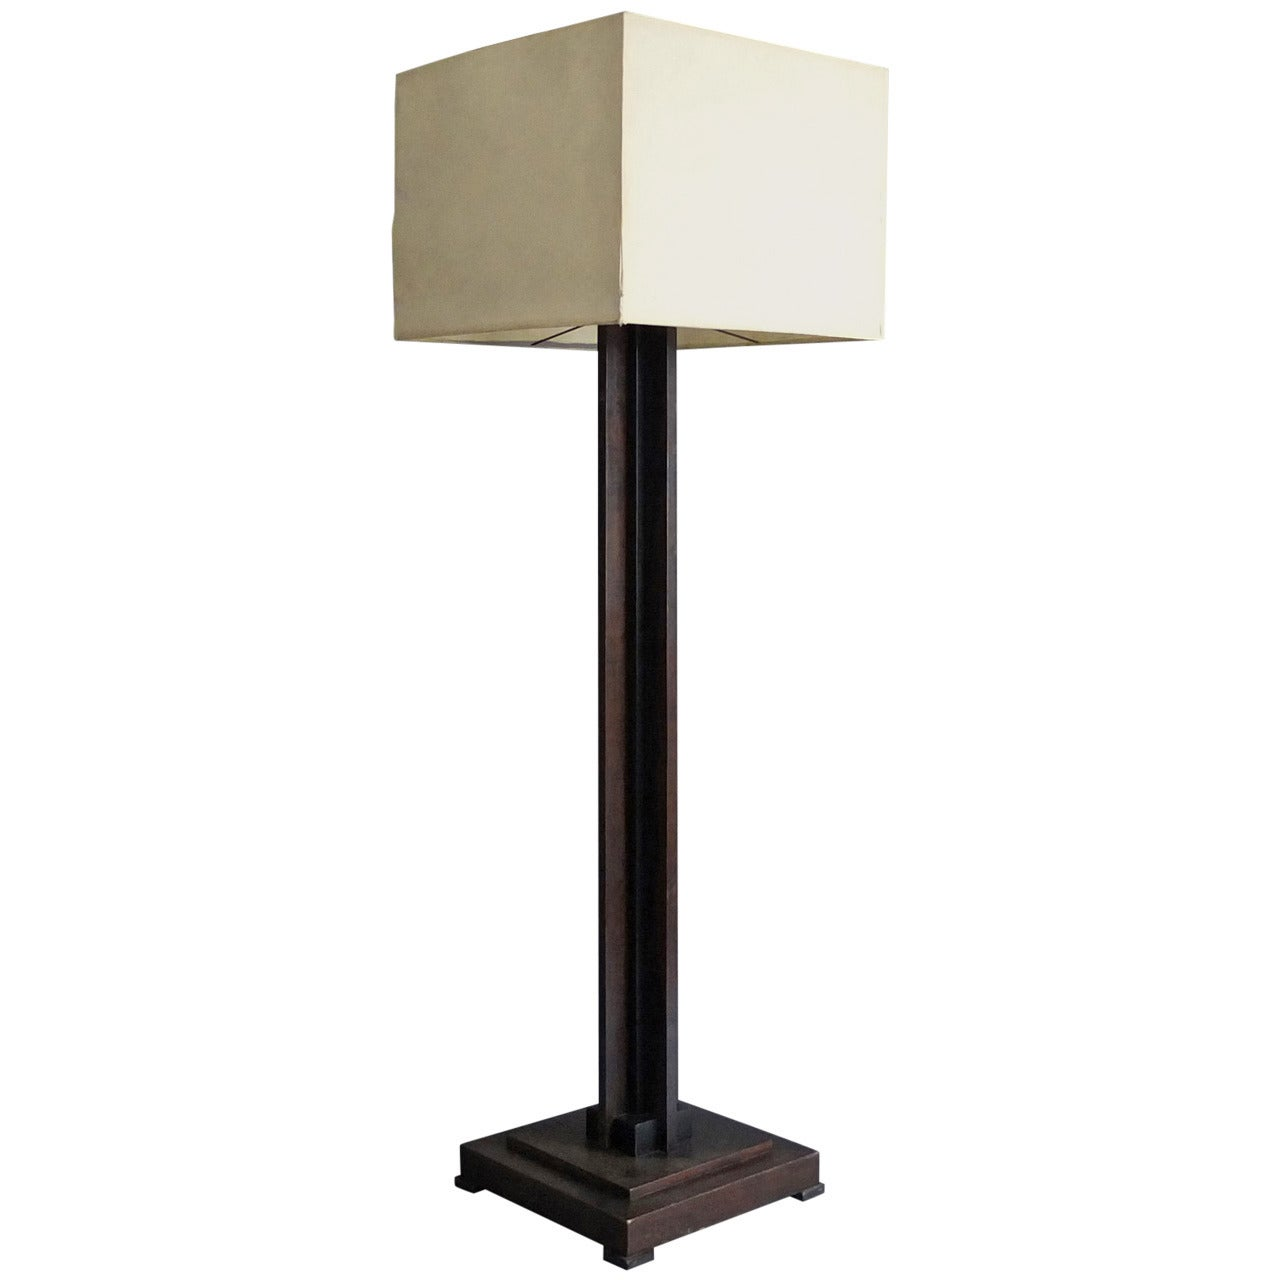 A Fine French Art Deco Wooden Square Base Floor Lamp